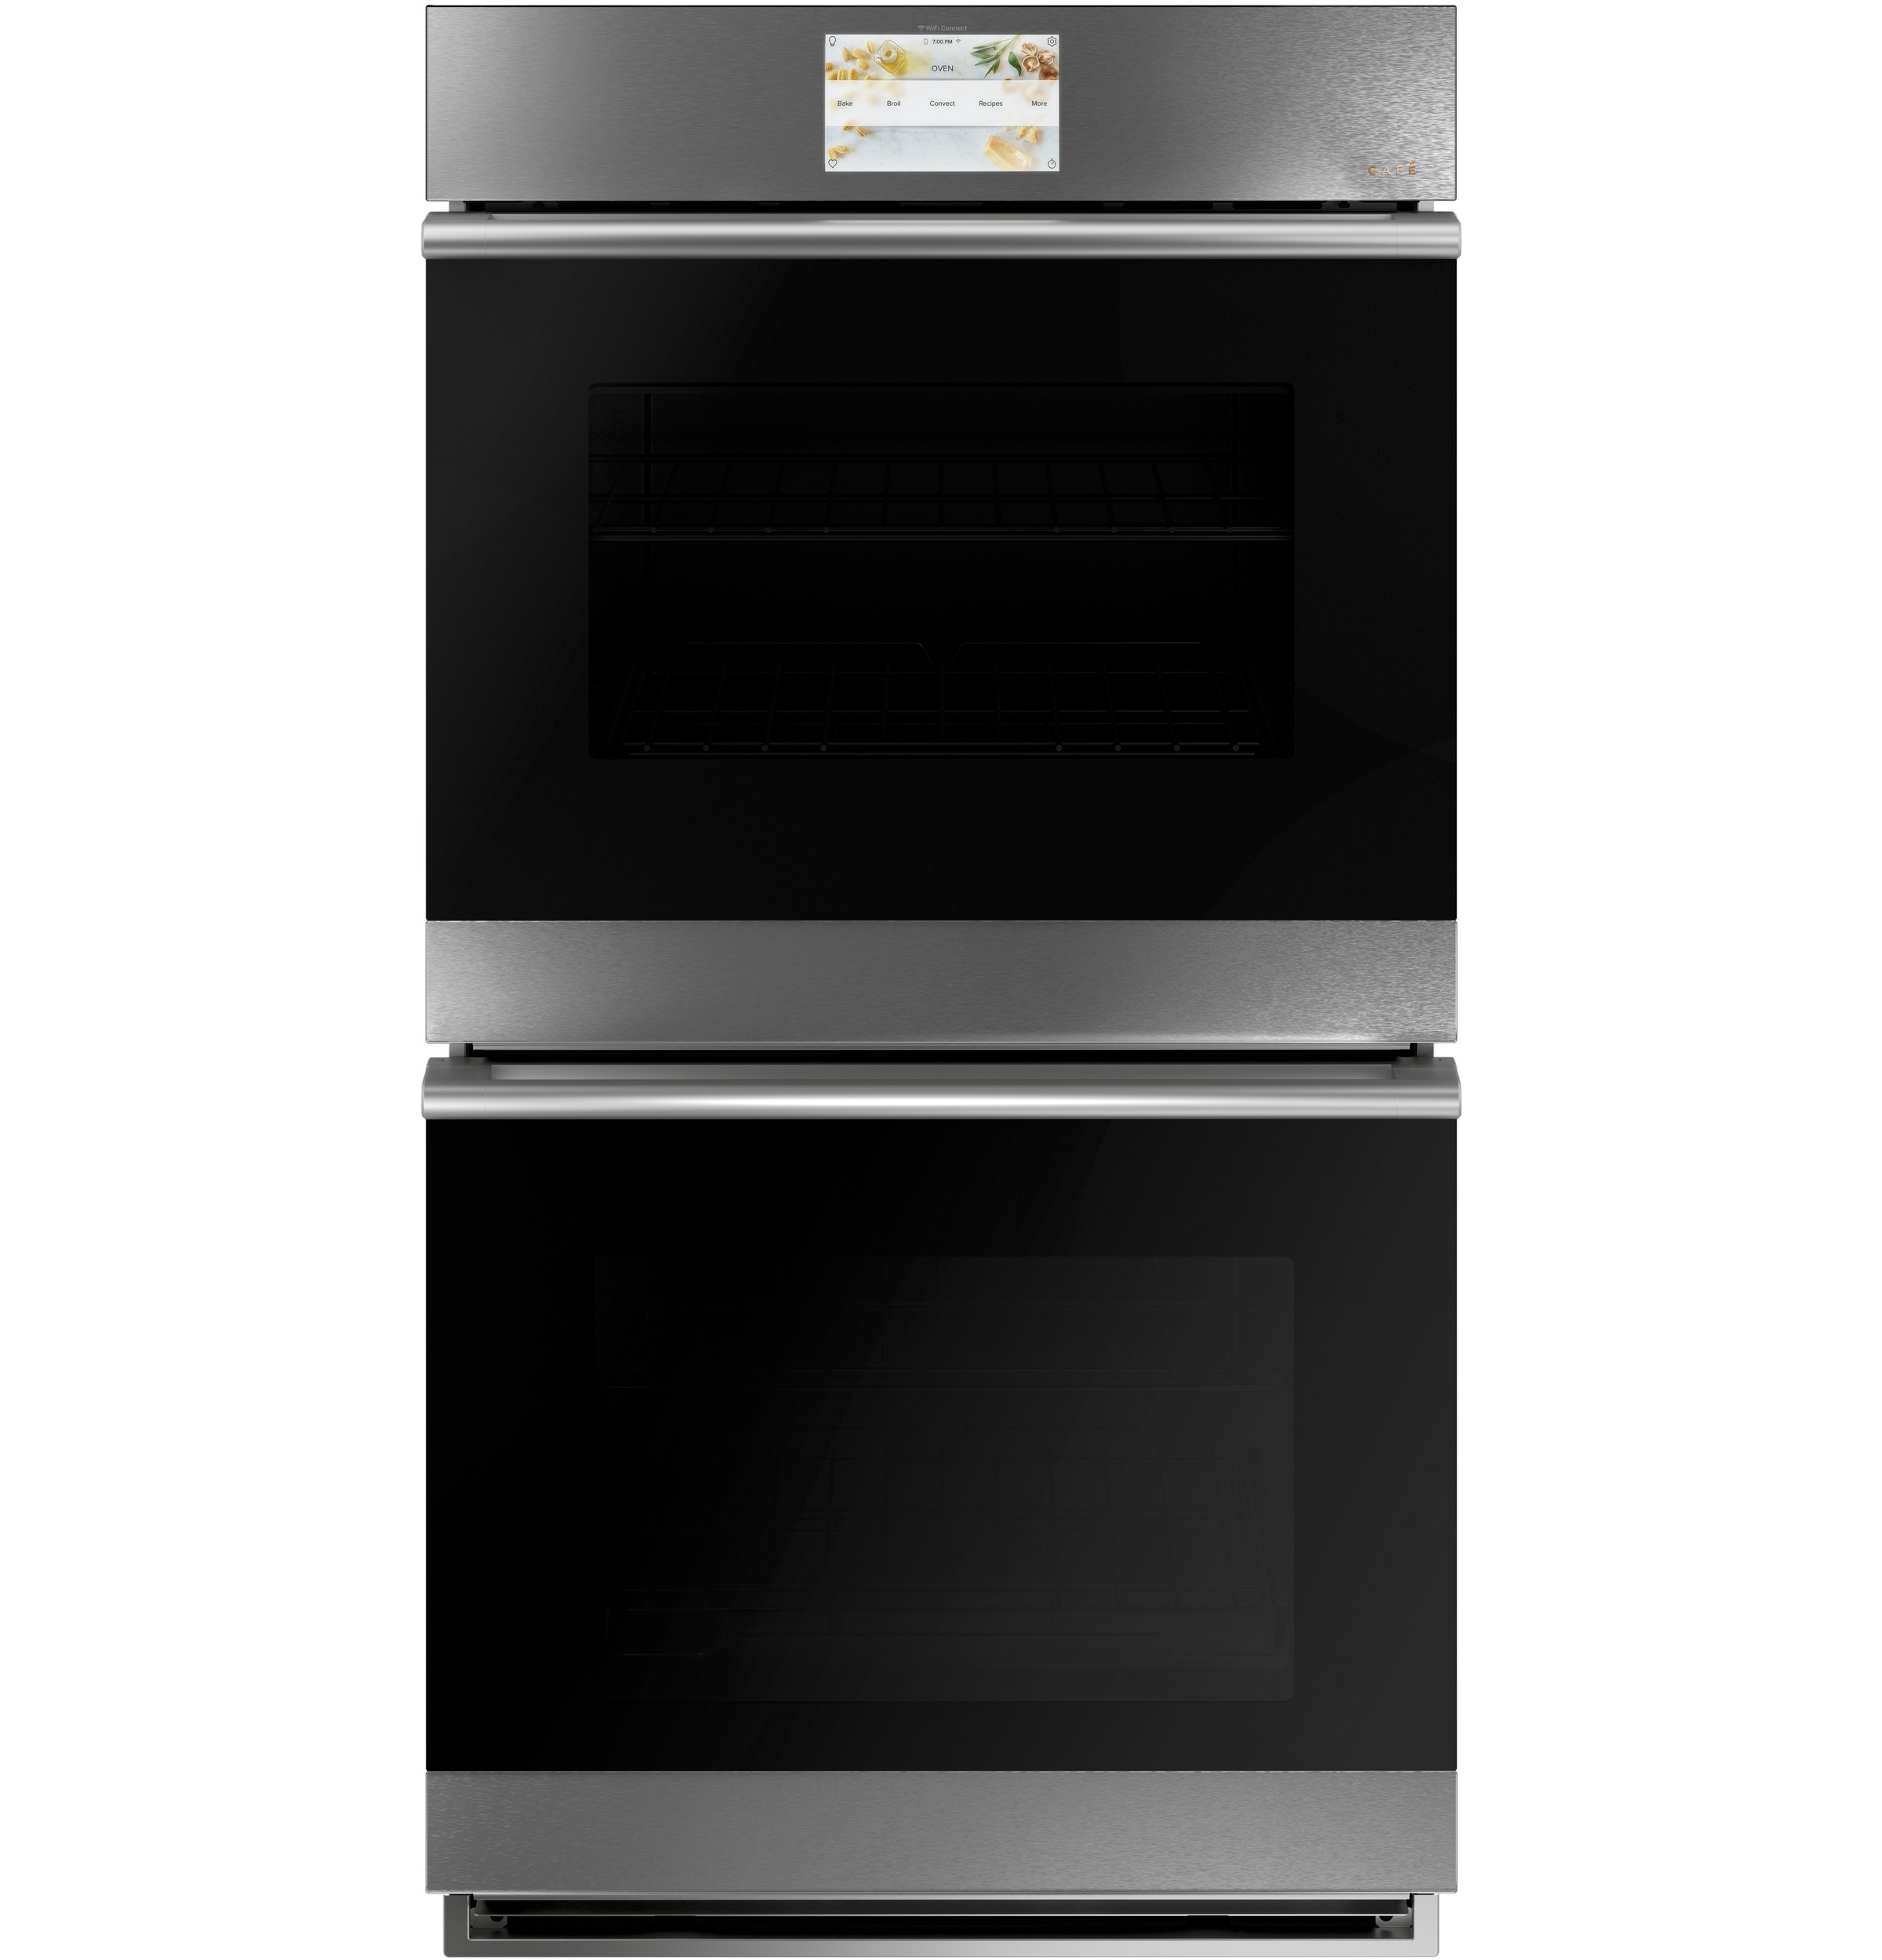 "Cafe Café™ 27"" Smart Double Wall Oven with Convection in Platinum Glass"